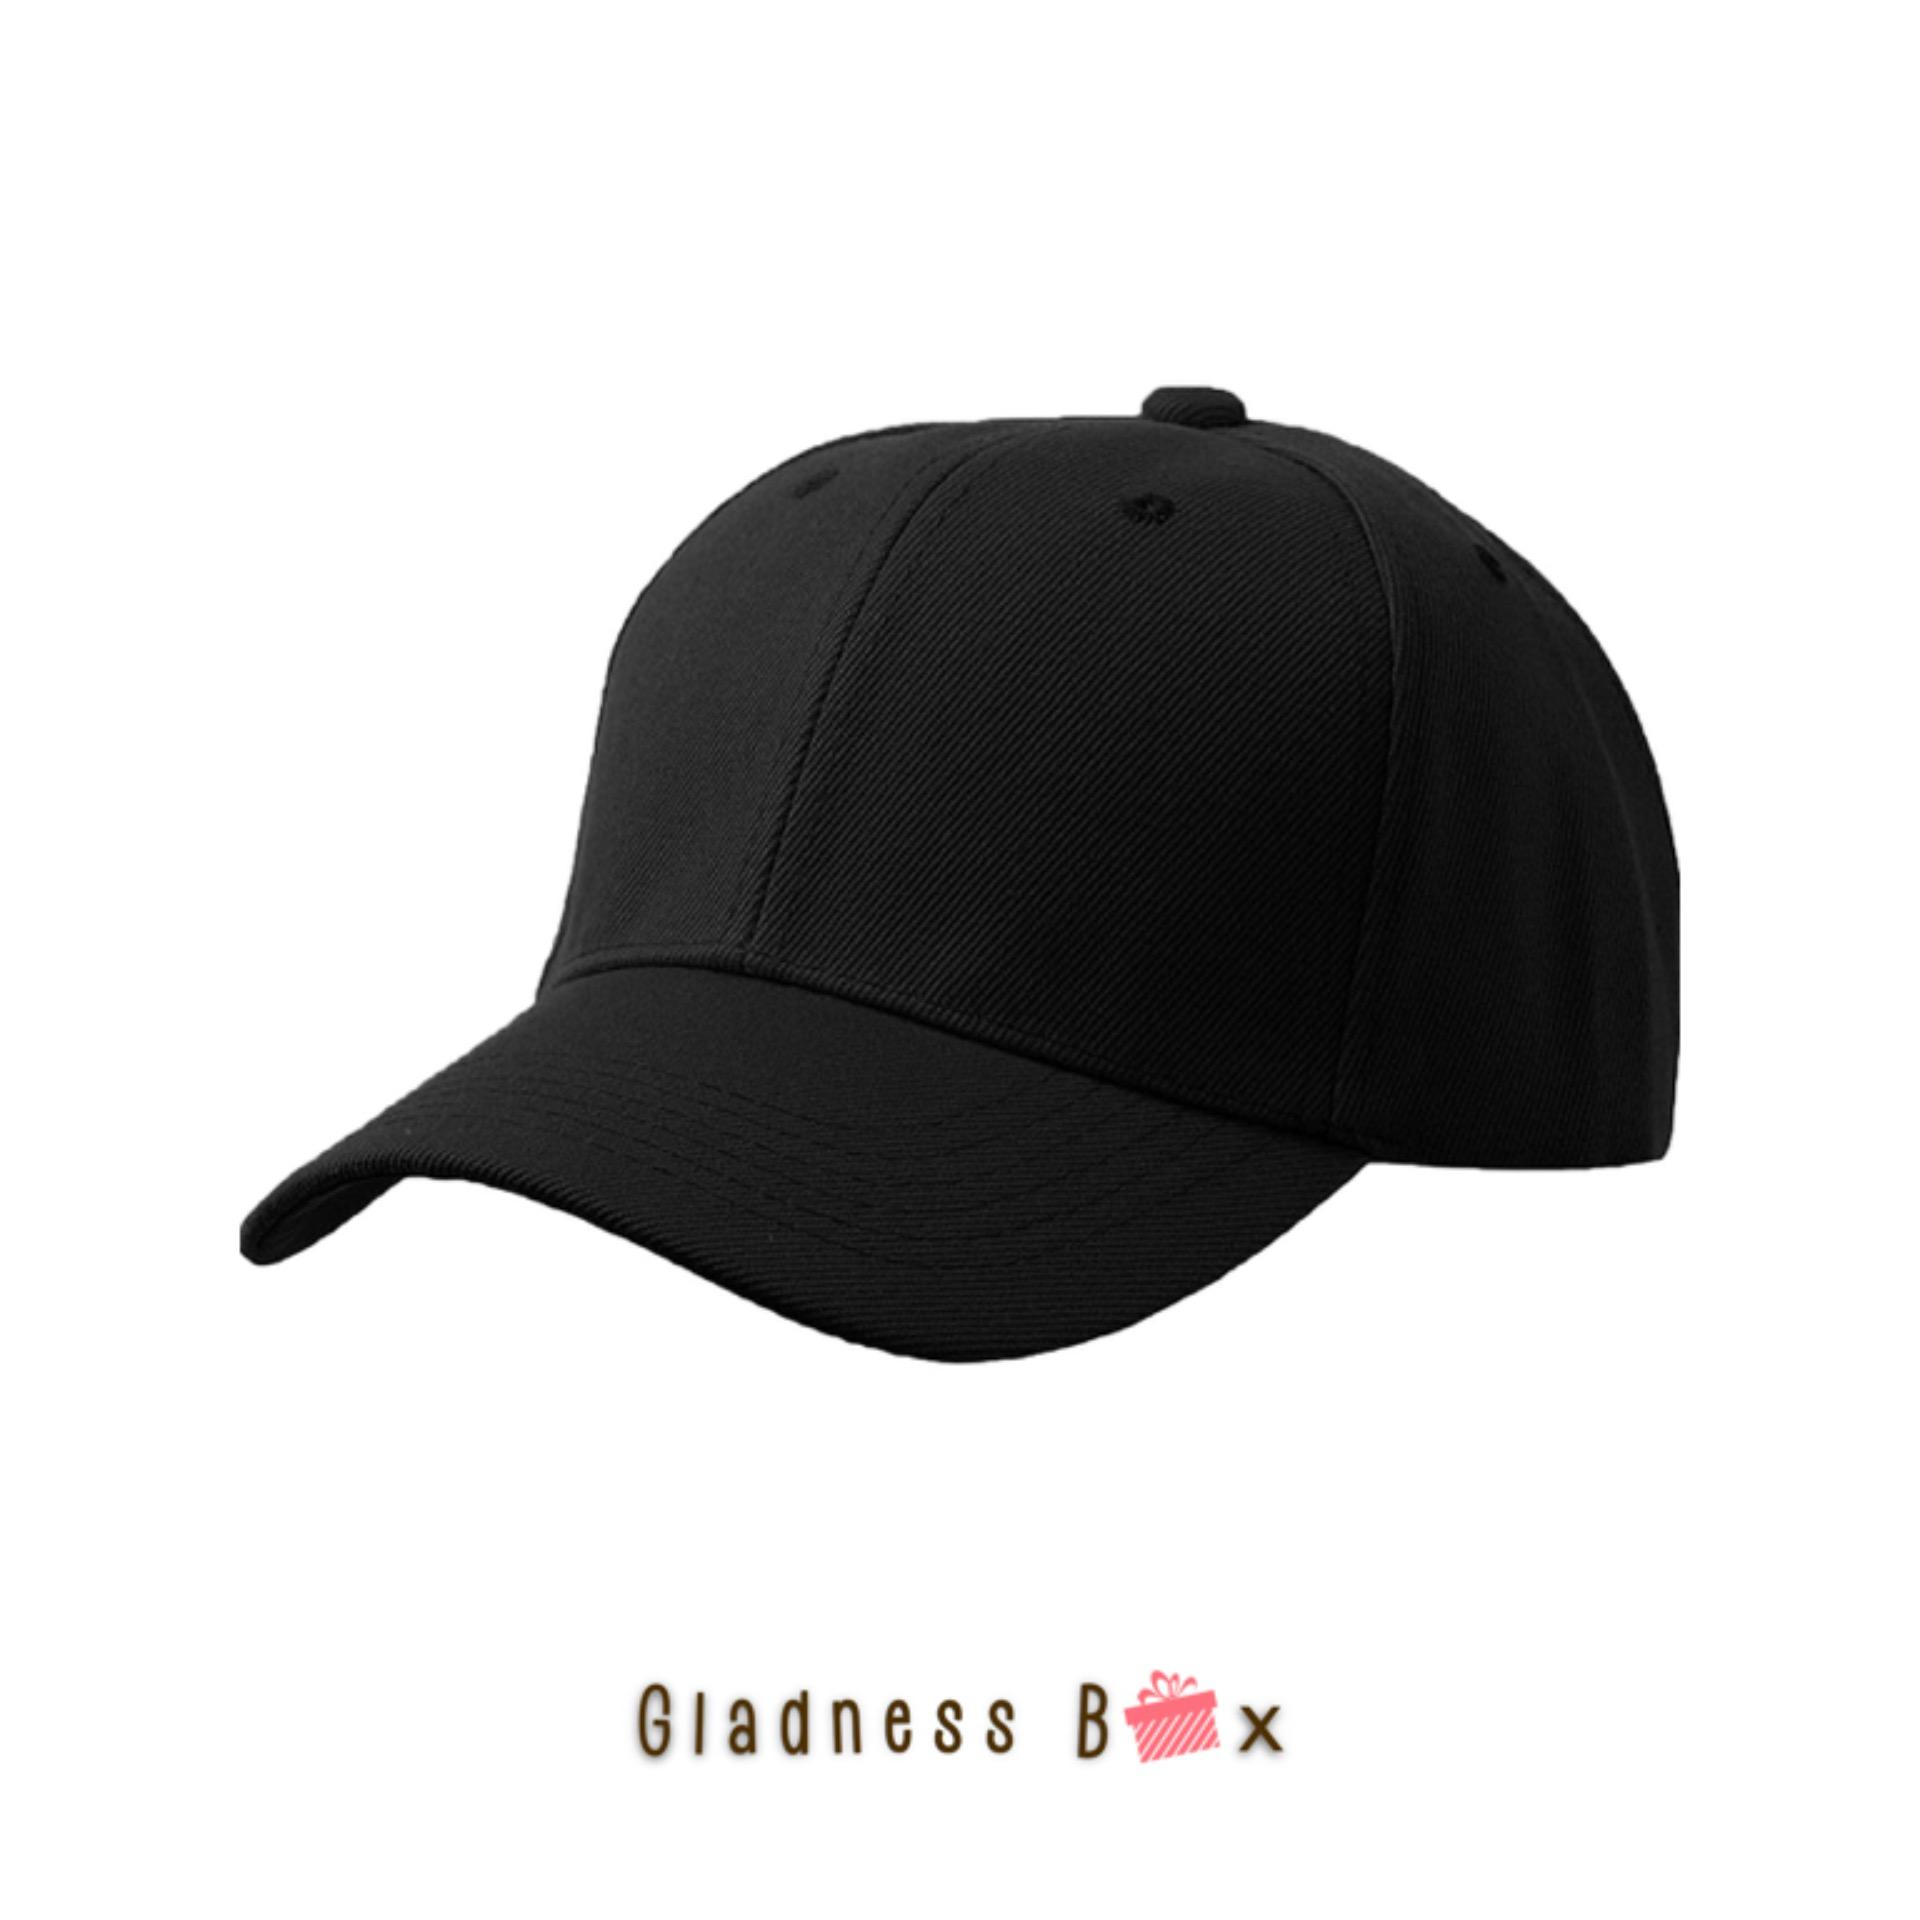 e8b375b8f35 Gladness Box High Quality Plain Baseball Cap for Men Women Unisex